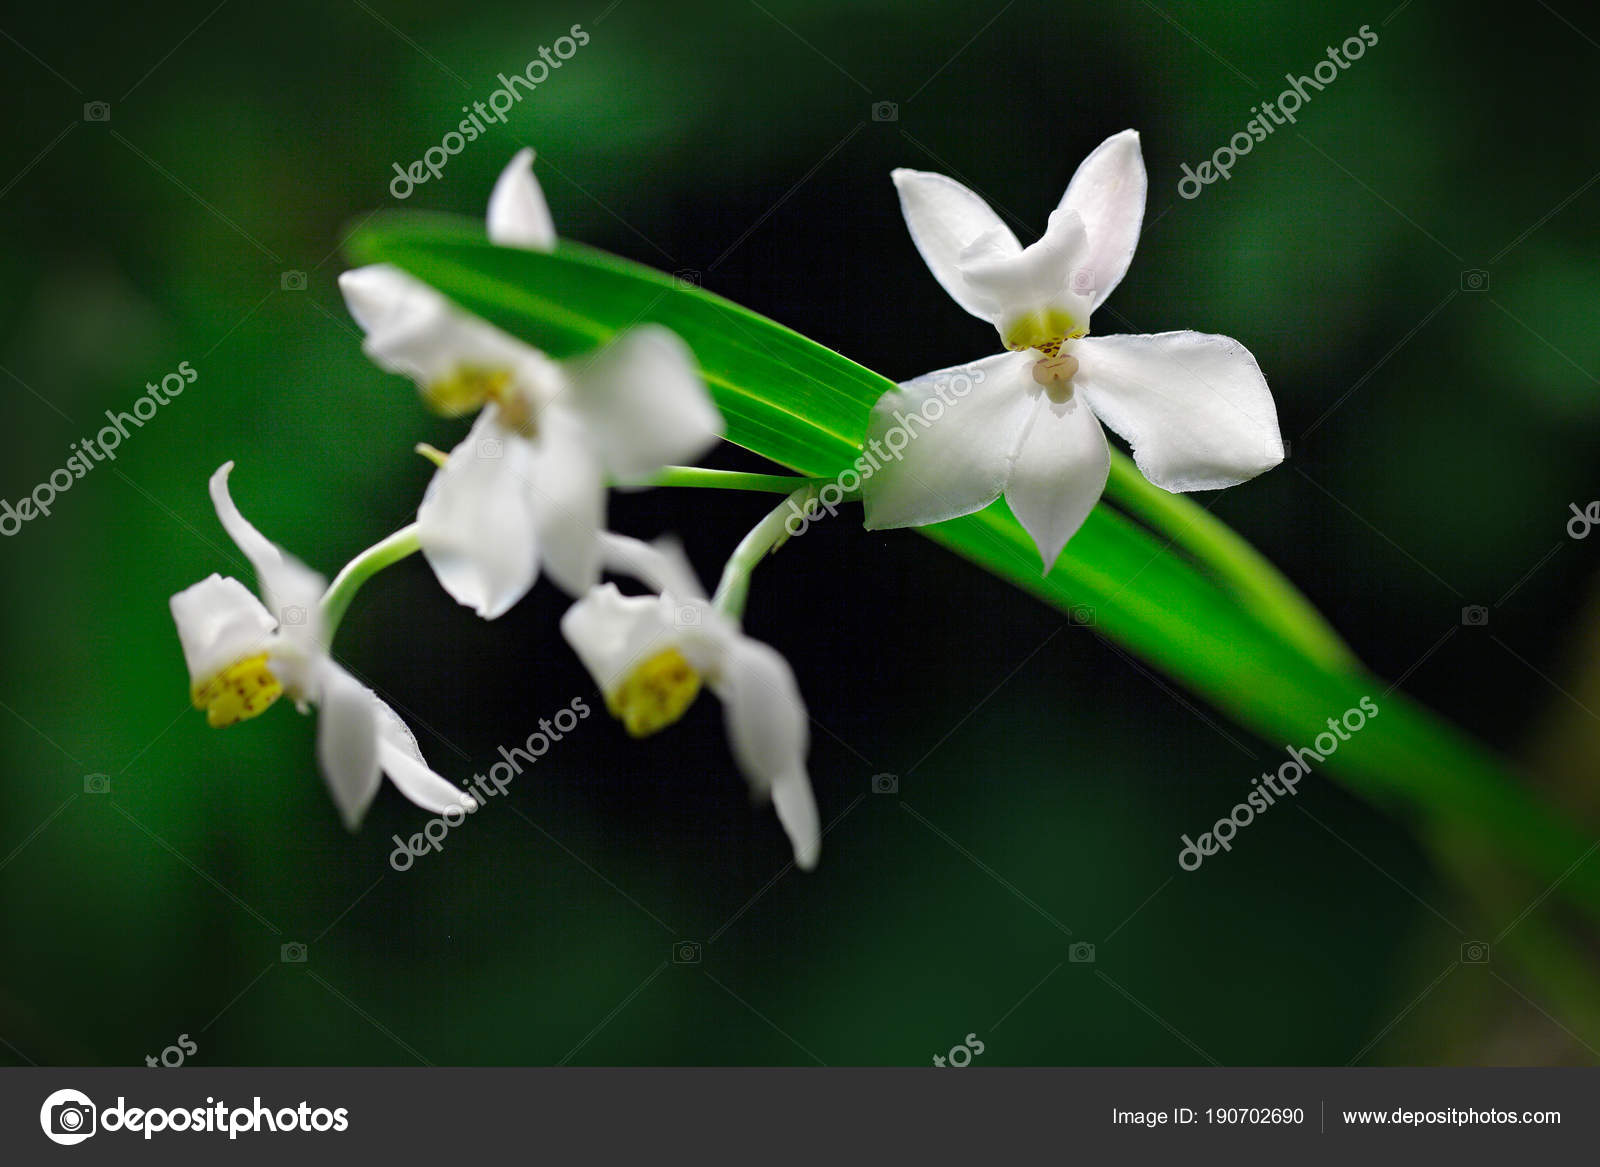 Wild White Tropic Orchid Flowers Stock Photo Ondrejprosicky